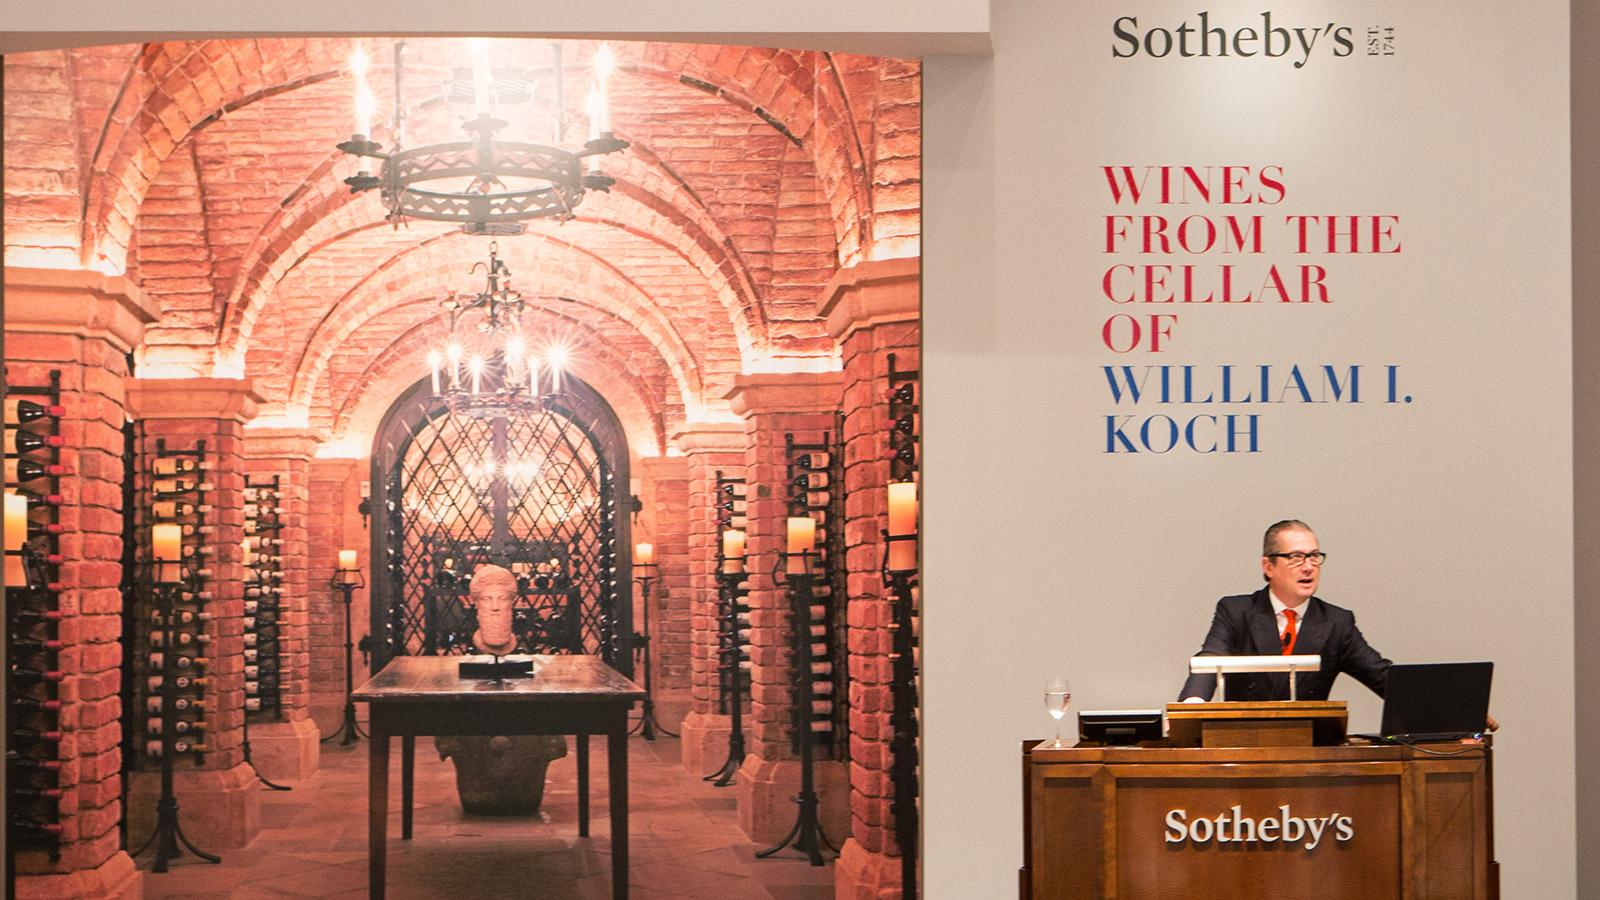 Sotheby's Scores Big with Bill Koch's $21.9 Million Wine Auction